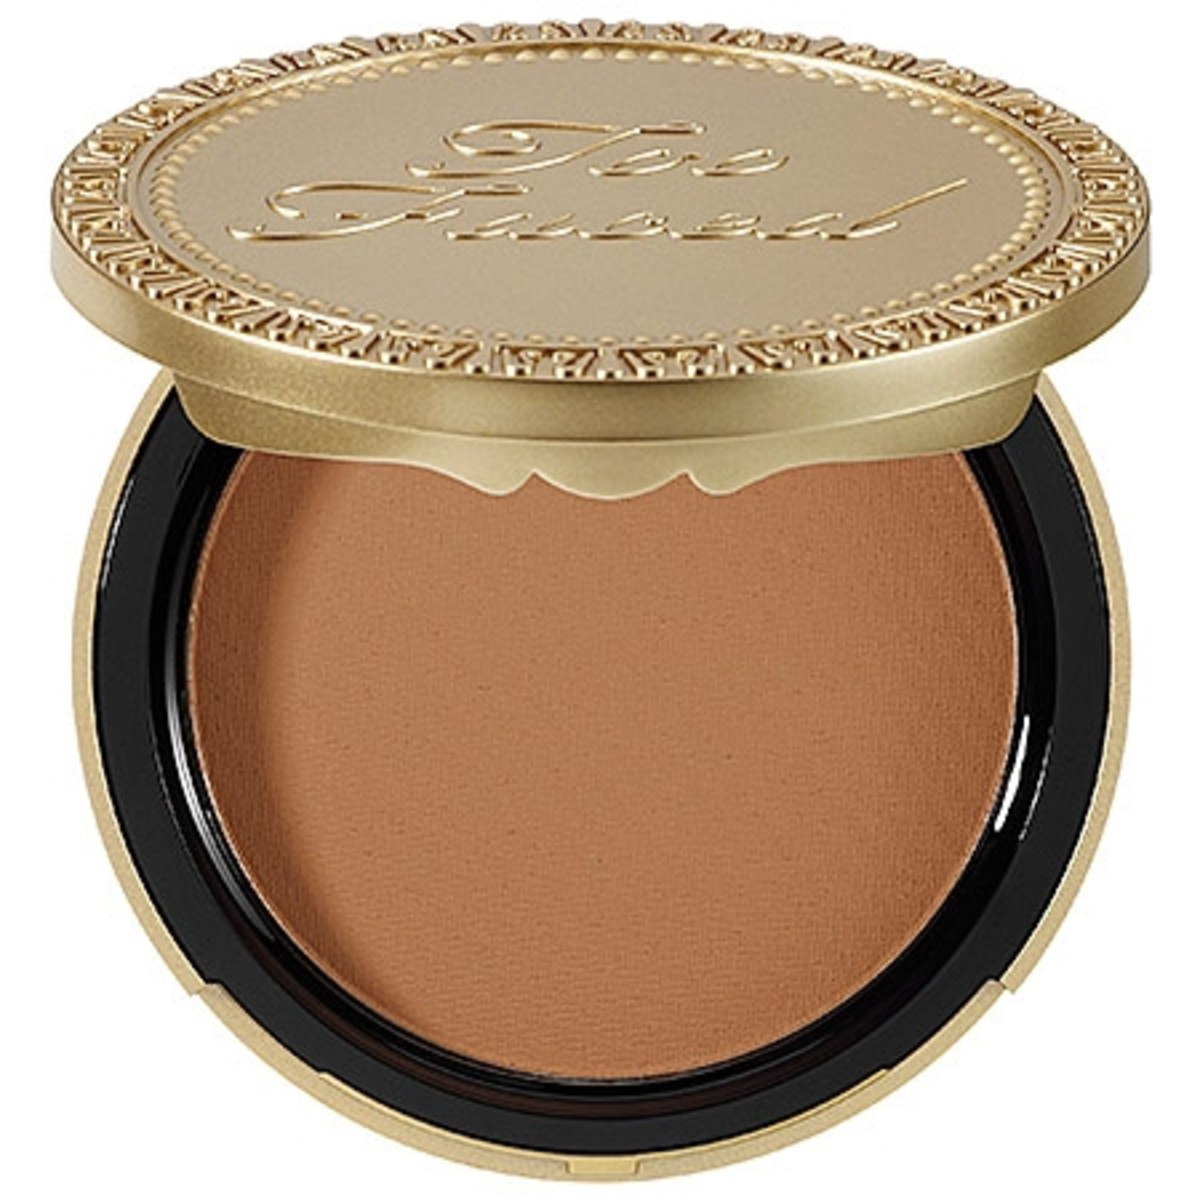 Too Faced Milk Chocolate Soleil Powder Bronzer